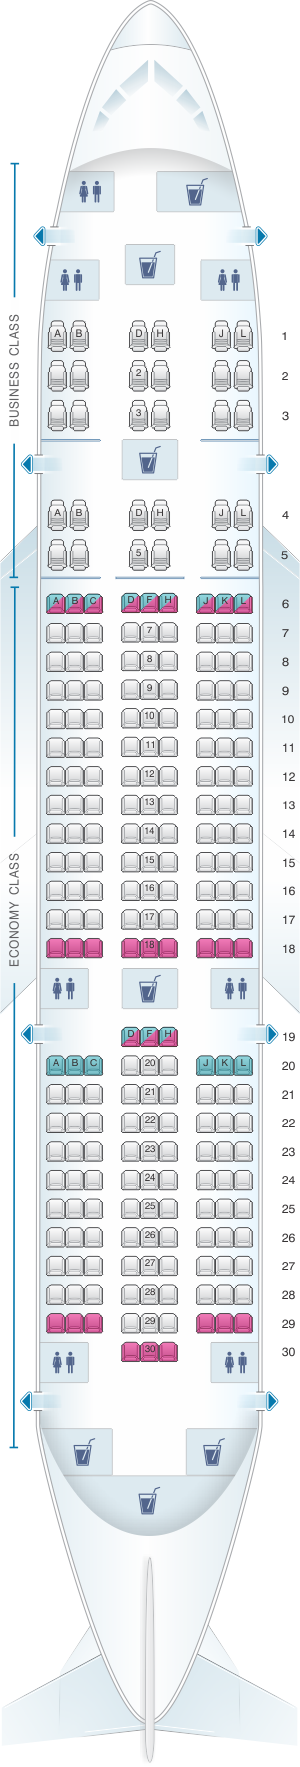 Seat map for LATAM Airlines Boeing B787-8